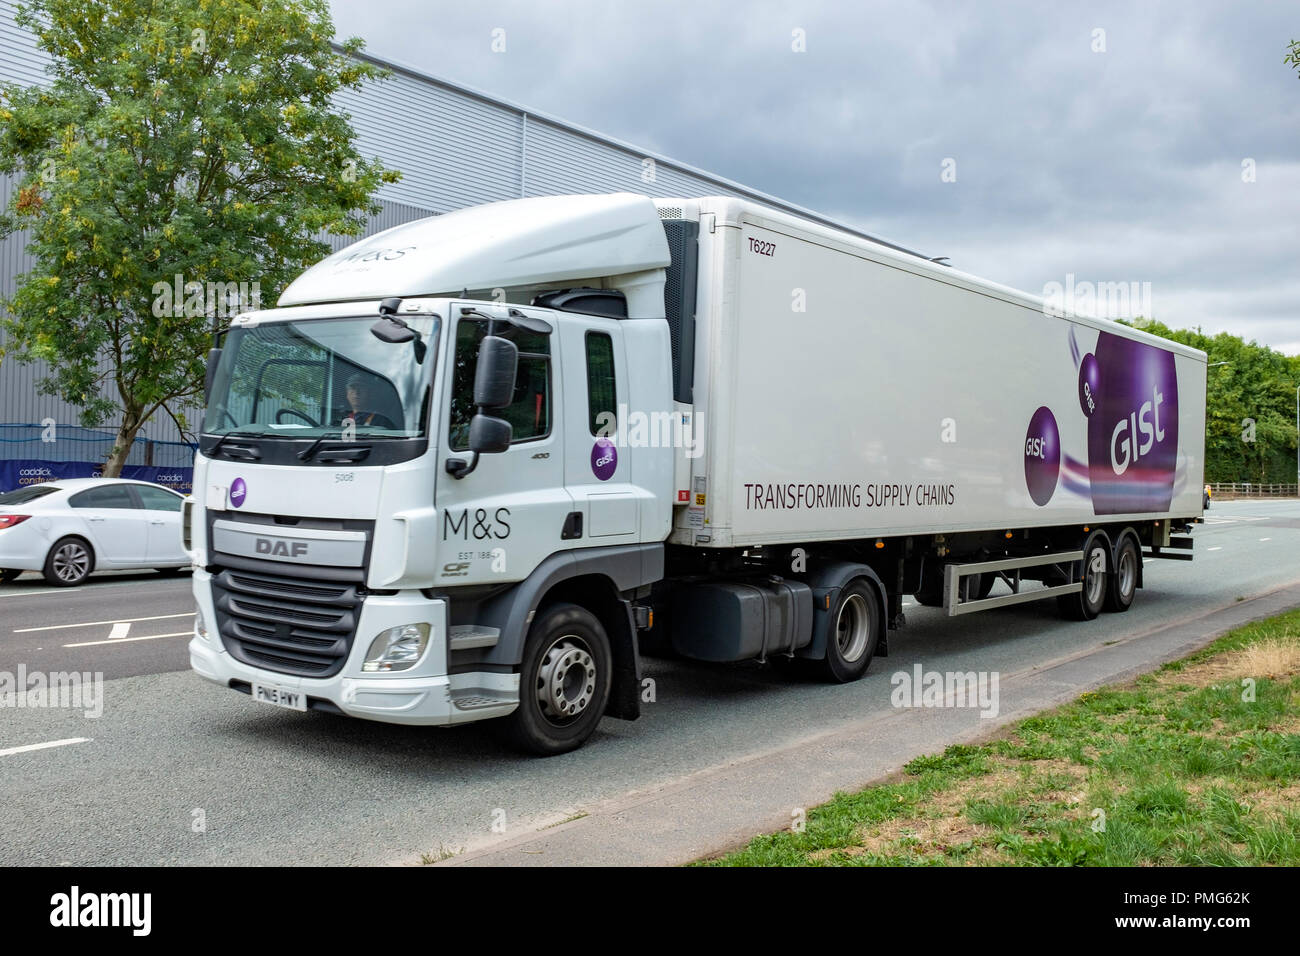 Gist hgv truck supply logistics working for M&S in Crewe Cheshire UK - Stock Image